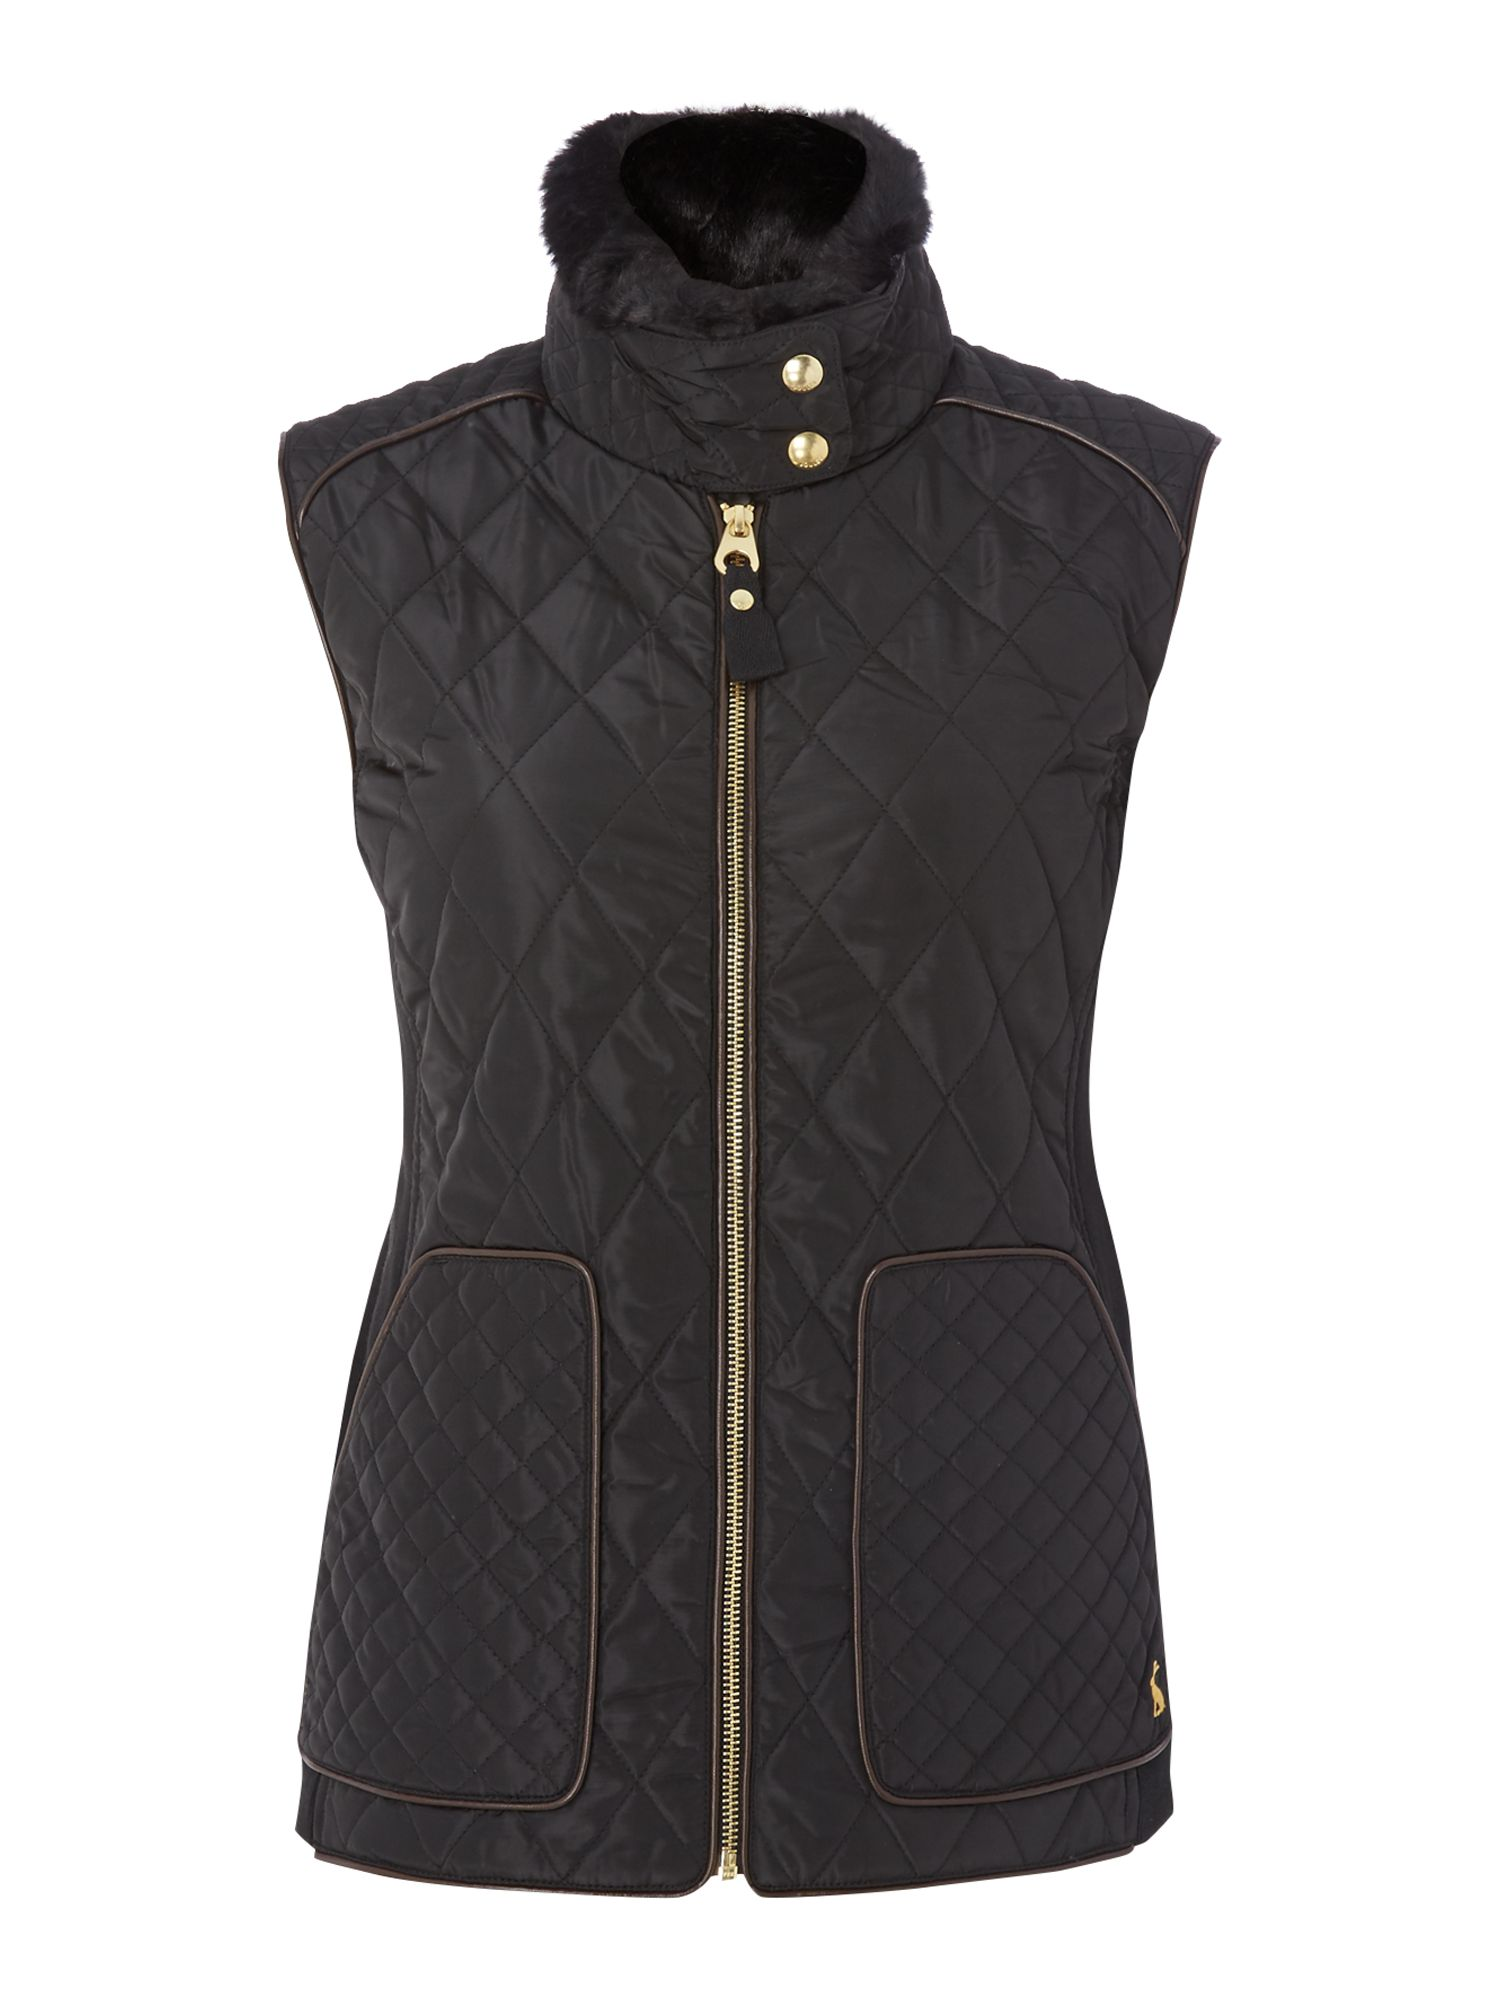 Joules Quilted Gilet With Faux Fur Trim, Black